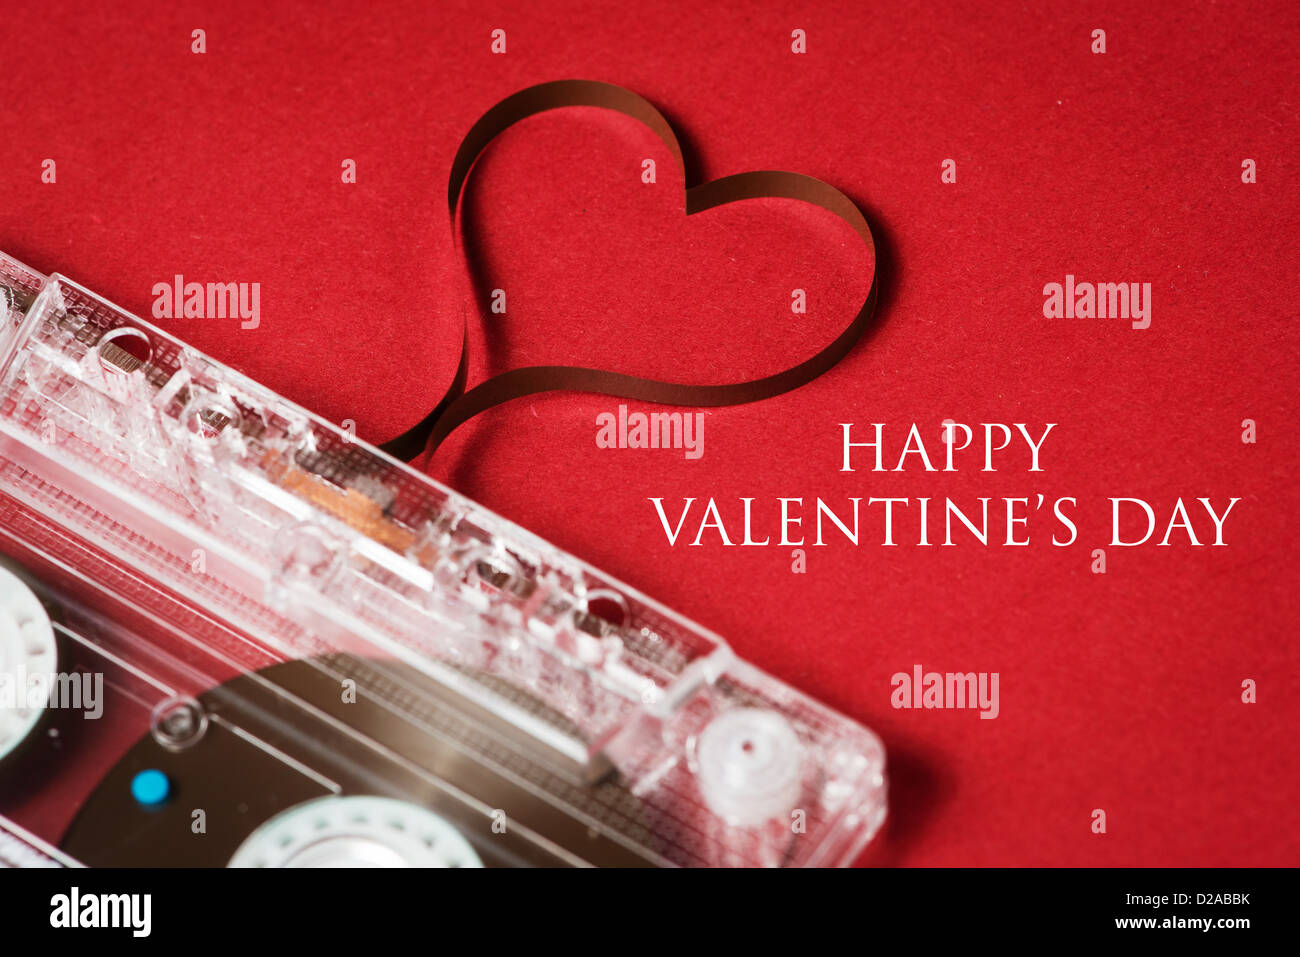 Valentines day card - audio cassette with magnetic tape in shape of heart on red background - Stock Image